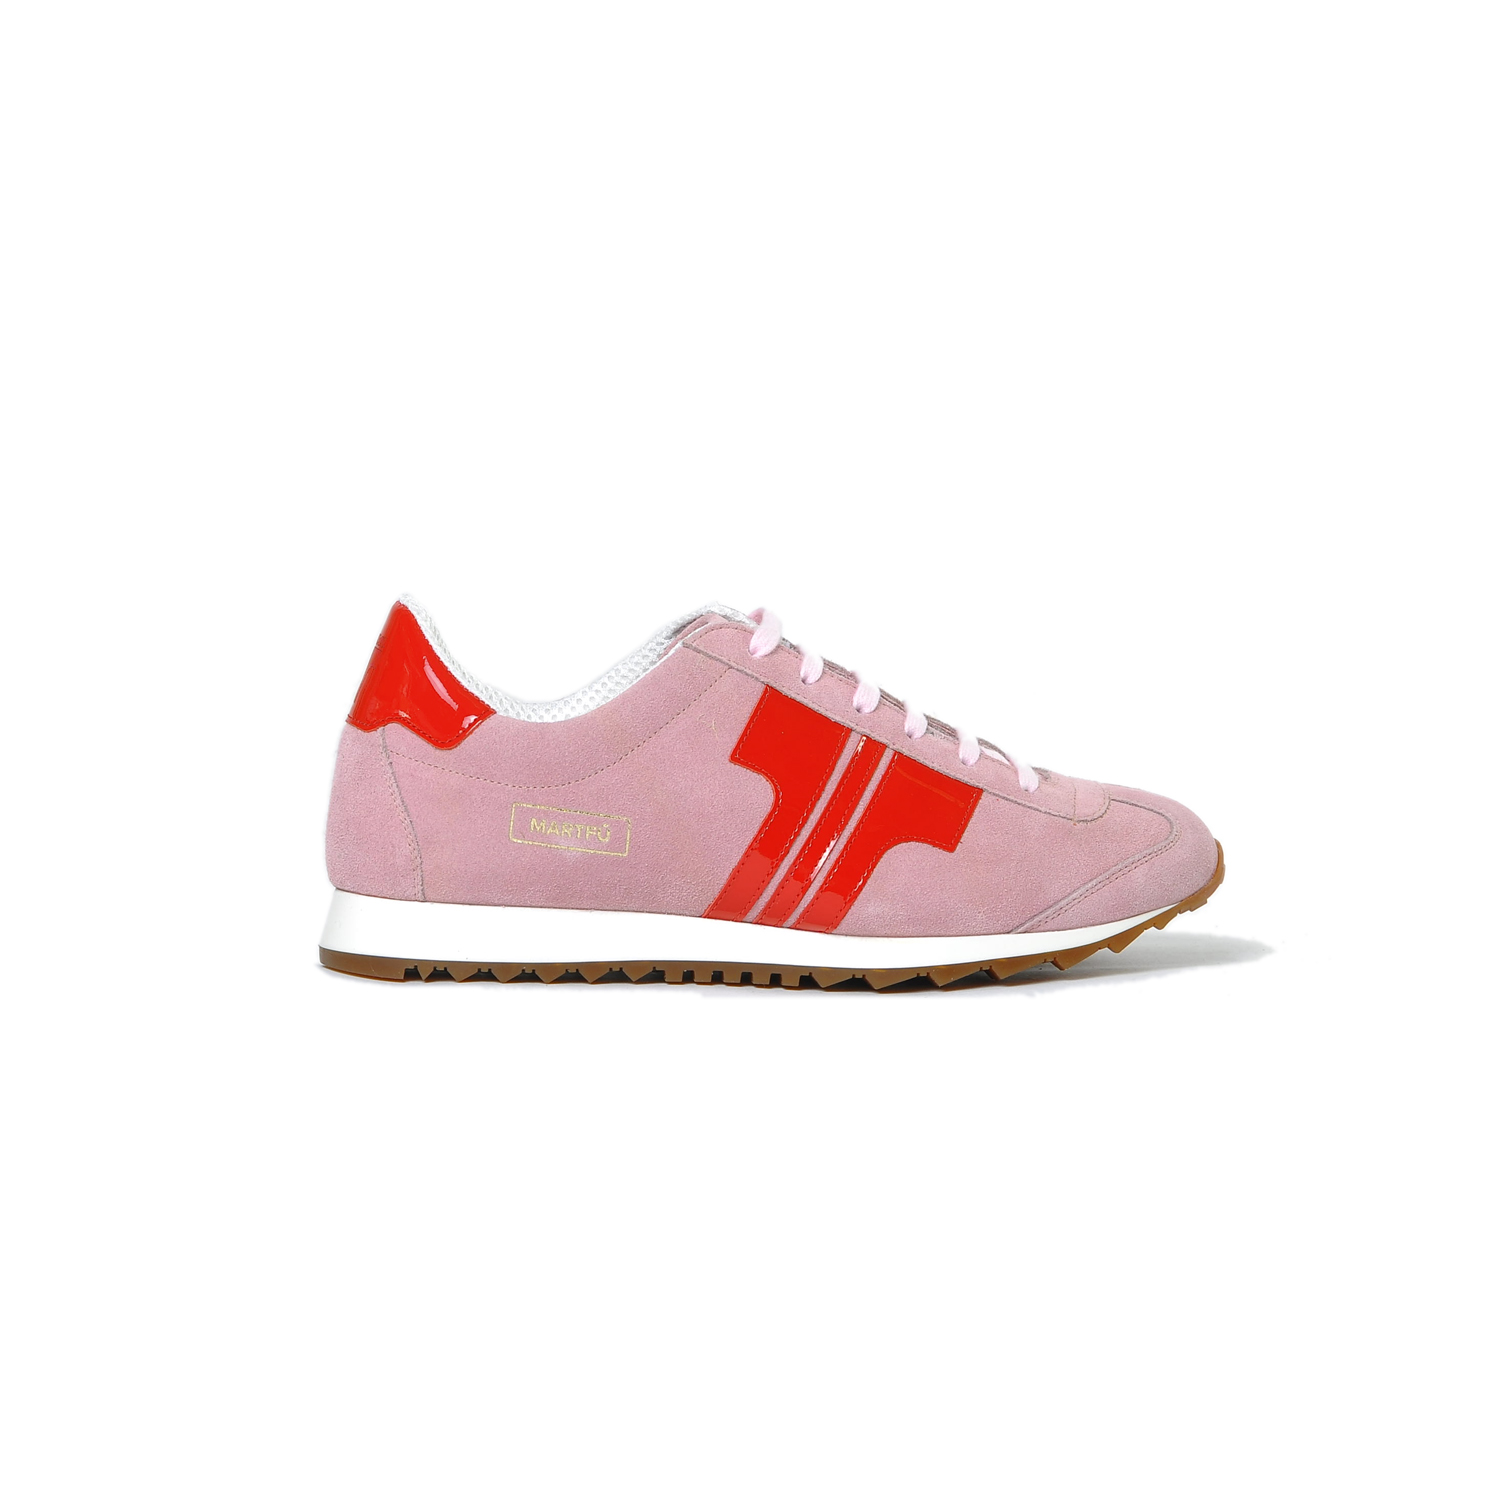 Tisza shoes - Martfű - Powder-red